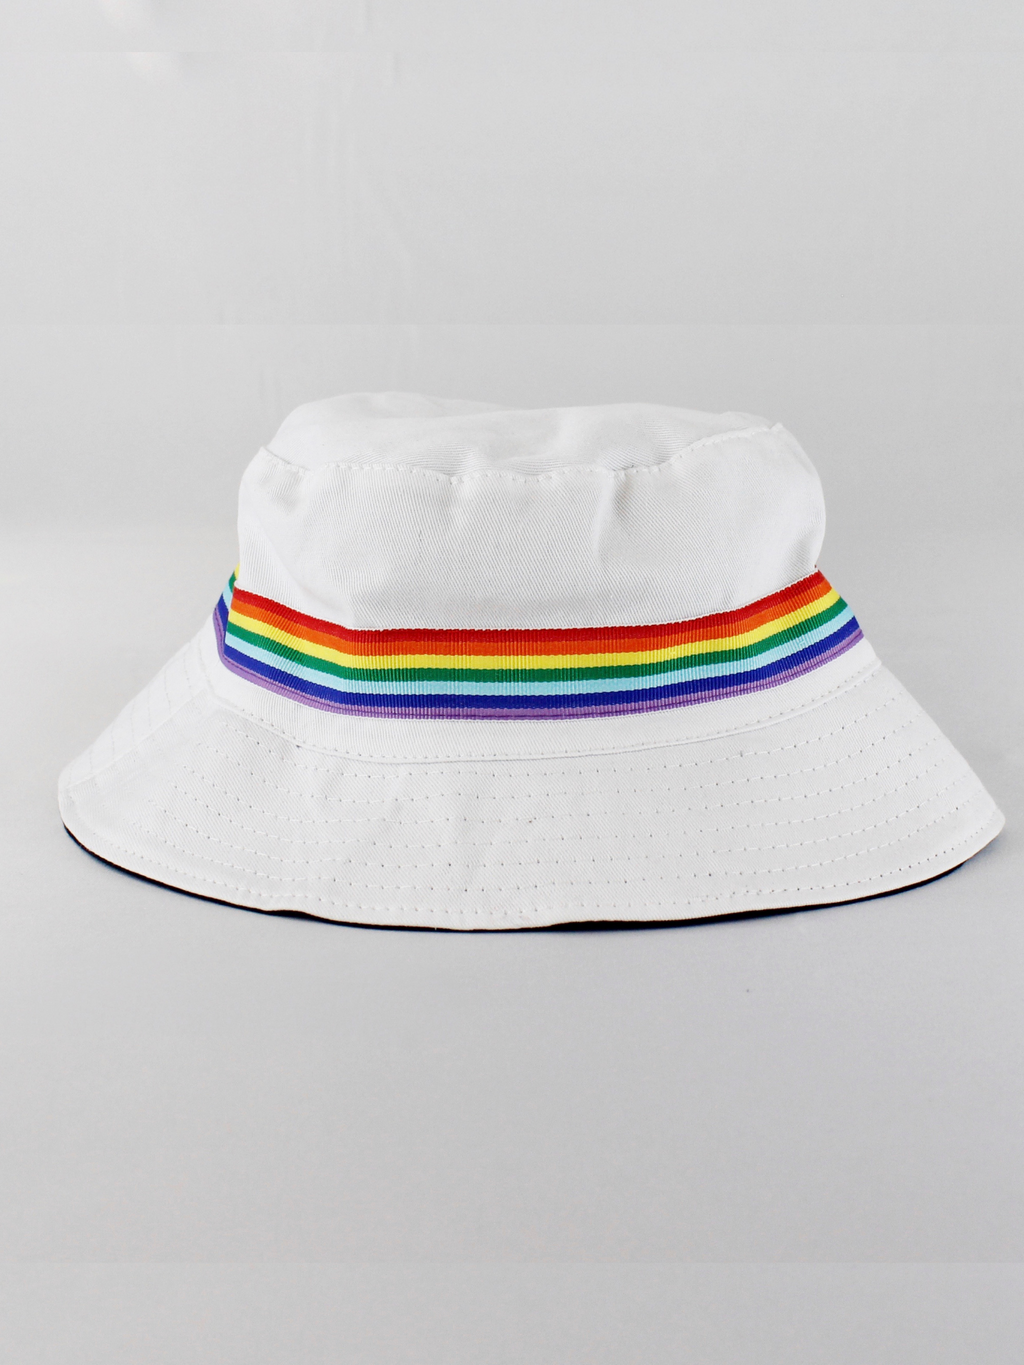 REVERSIBLE PRIDE BUCKET HAT - svnx